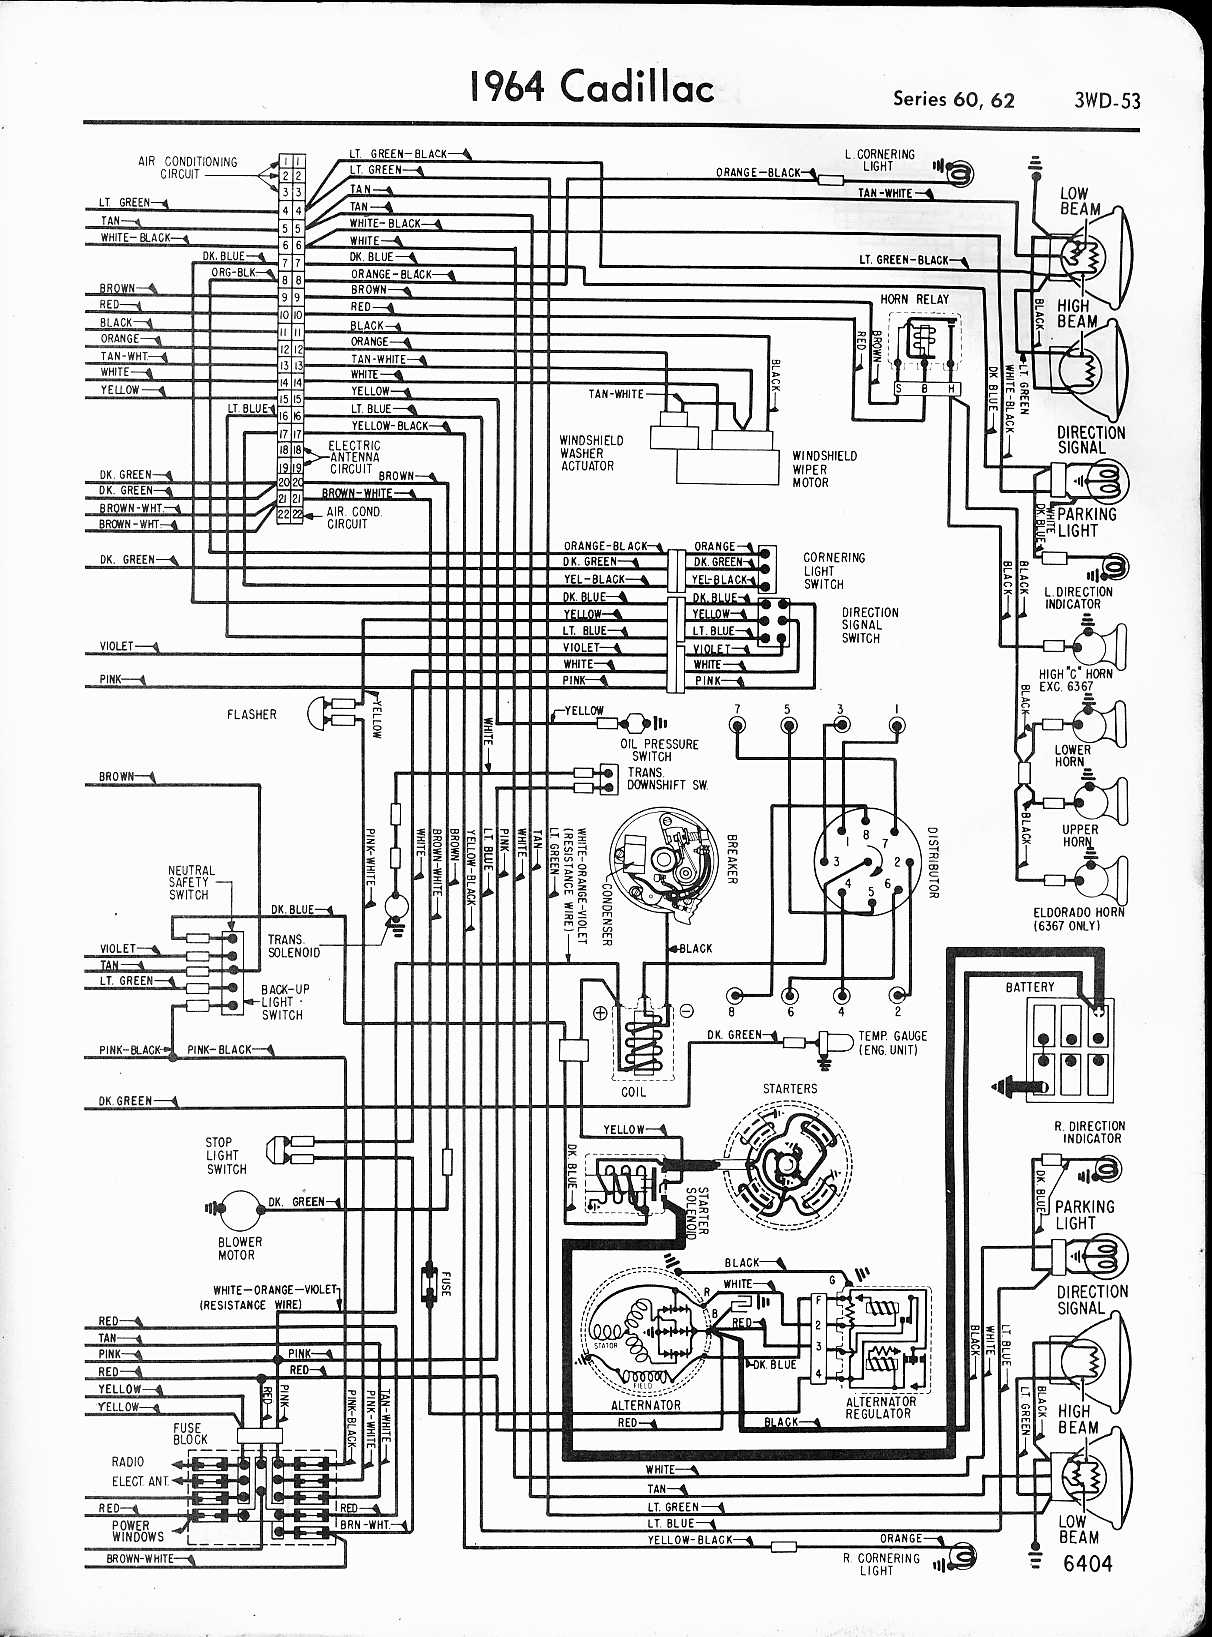 1965 cadillac deville fuse box location circuit diagram symbols \u2022 1996 cadillac deville fuse box diagram 1964 cadillac wiring diagram free vehicle wiring diagrams u2022 rh narfiyanstudio com 1998 cadillac deville fuse box location 2000 cadillac deville fuse box